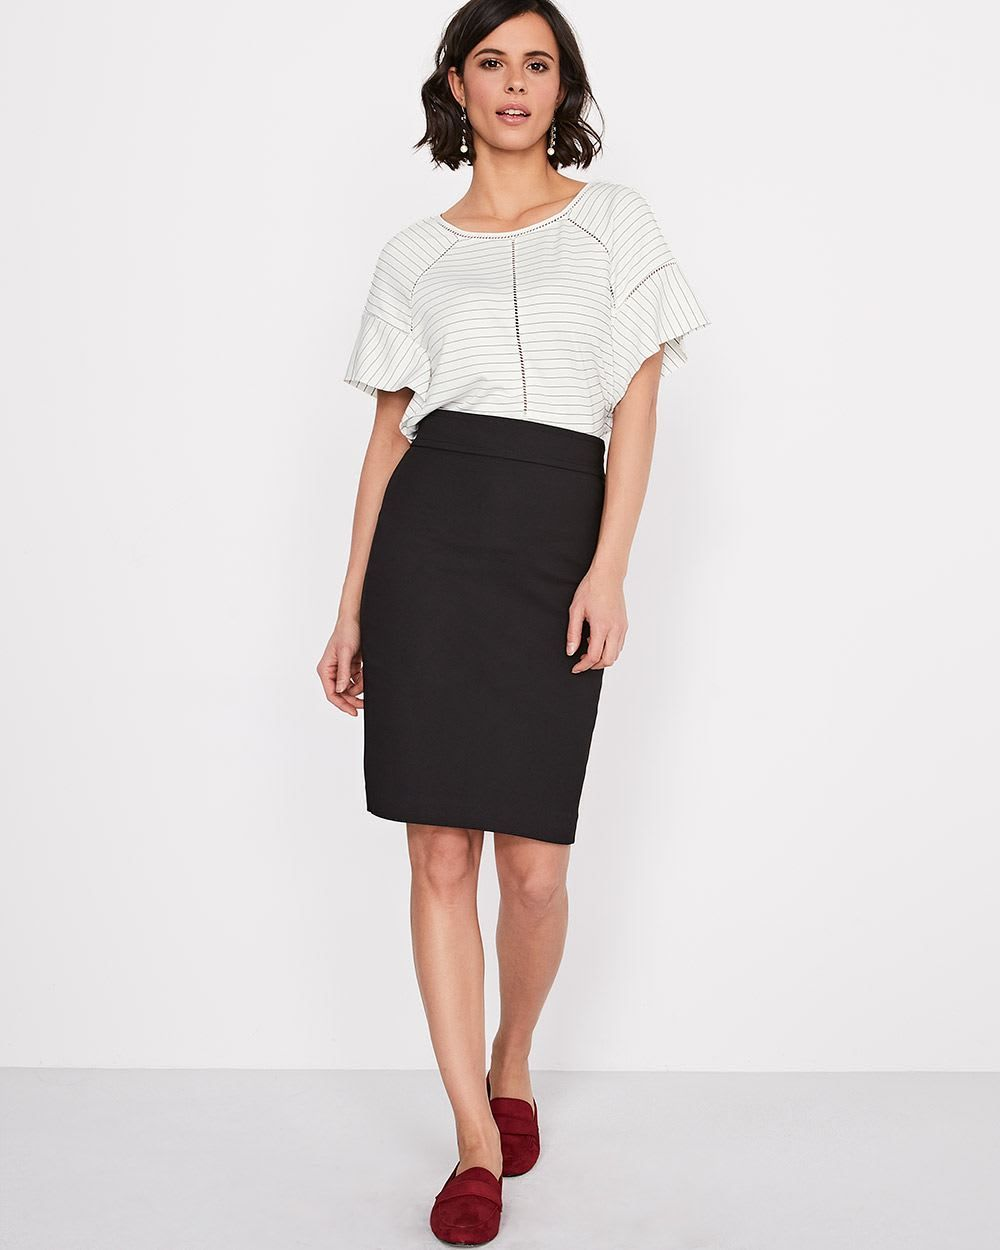 f04b7f8cd Solid Modern Chic Pencil Skirt | Dress 6 | Skirts, High waisted ...